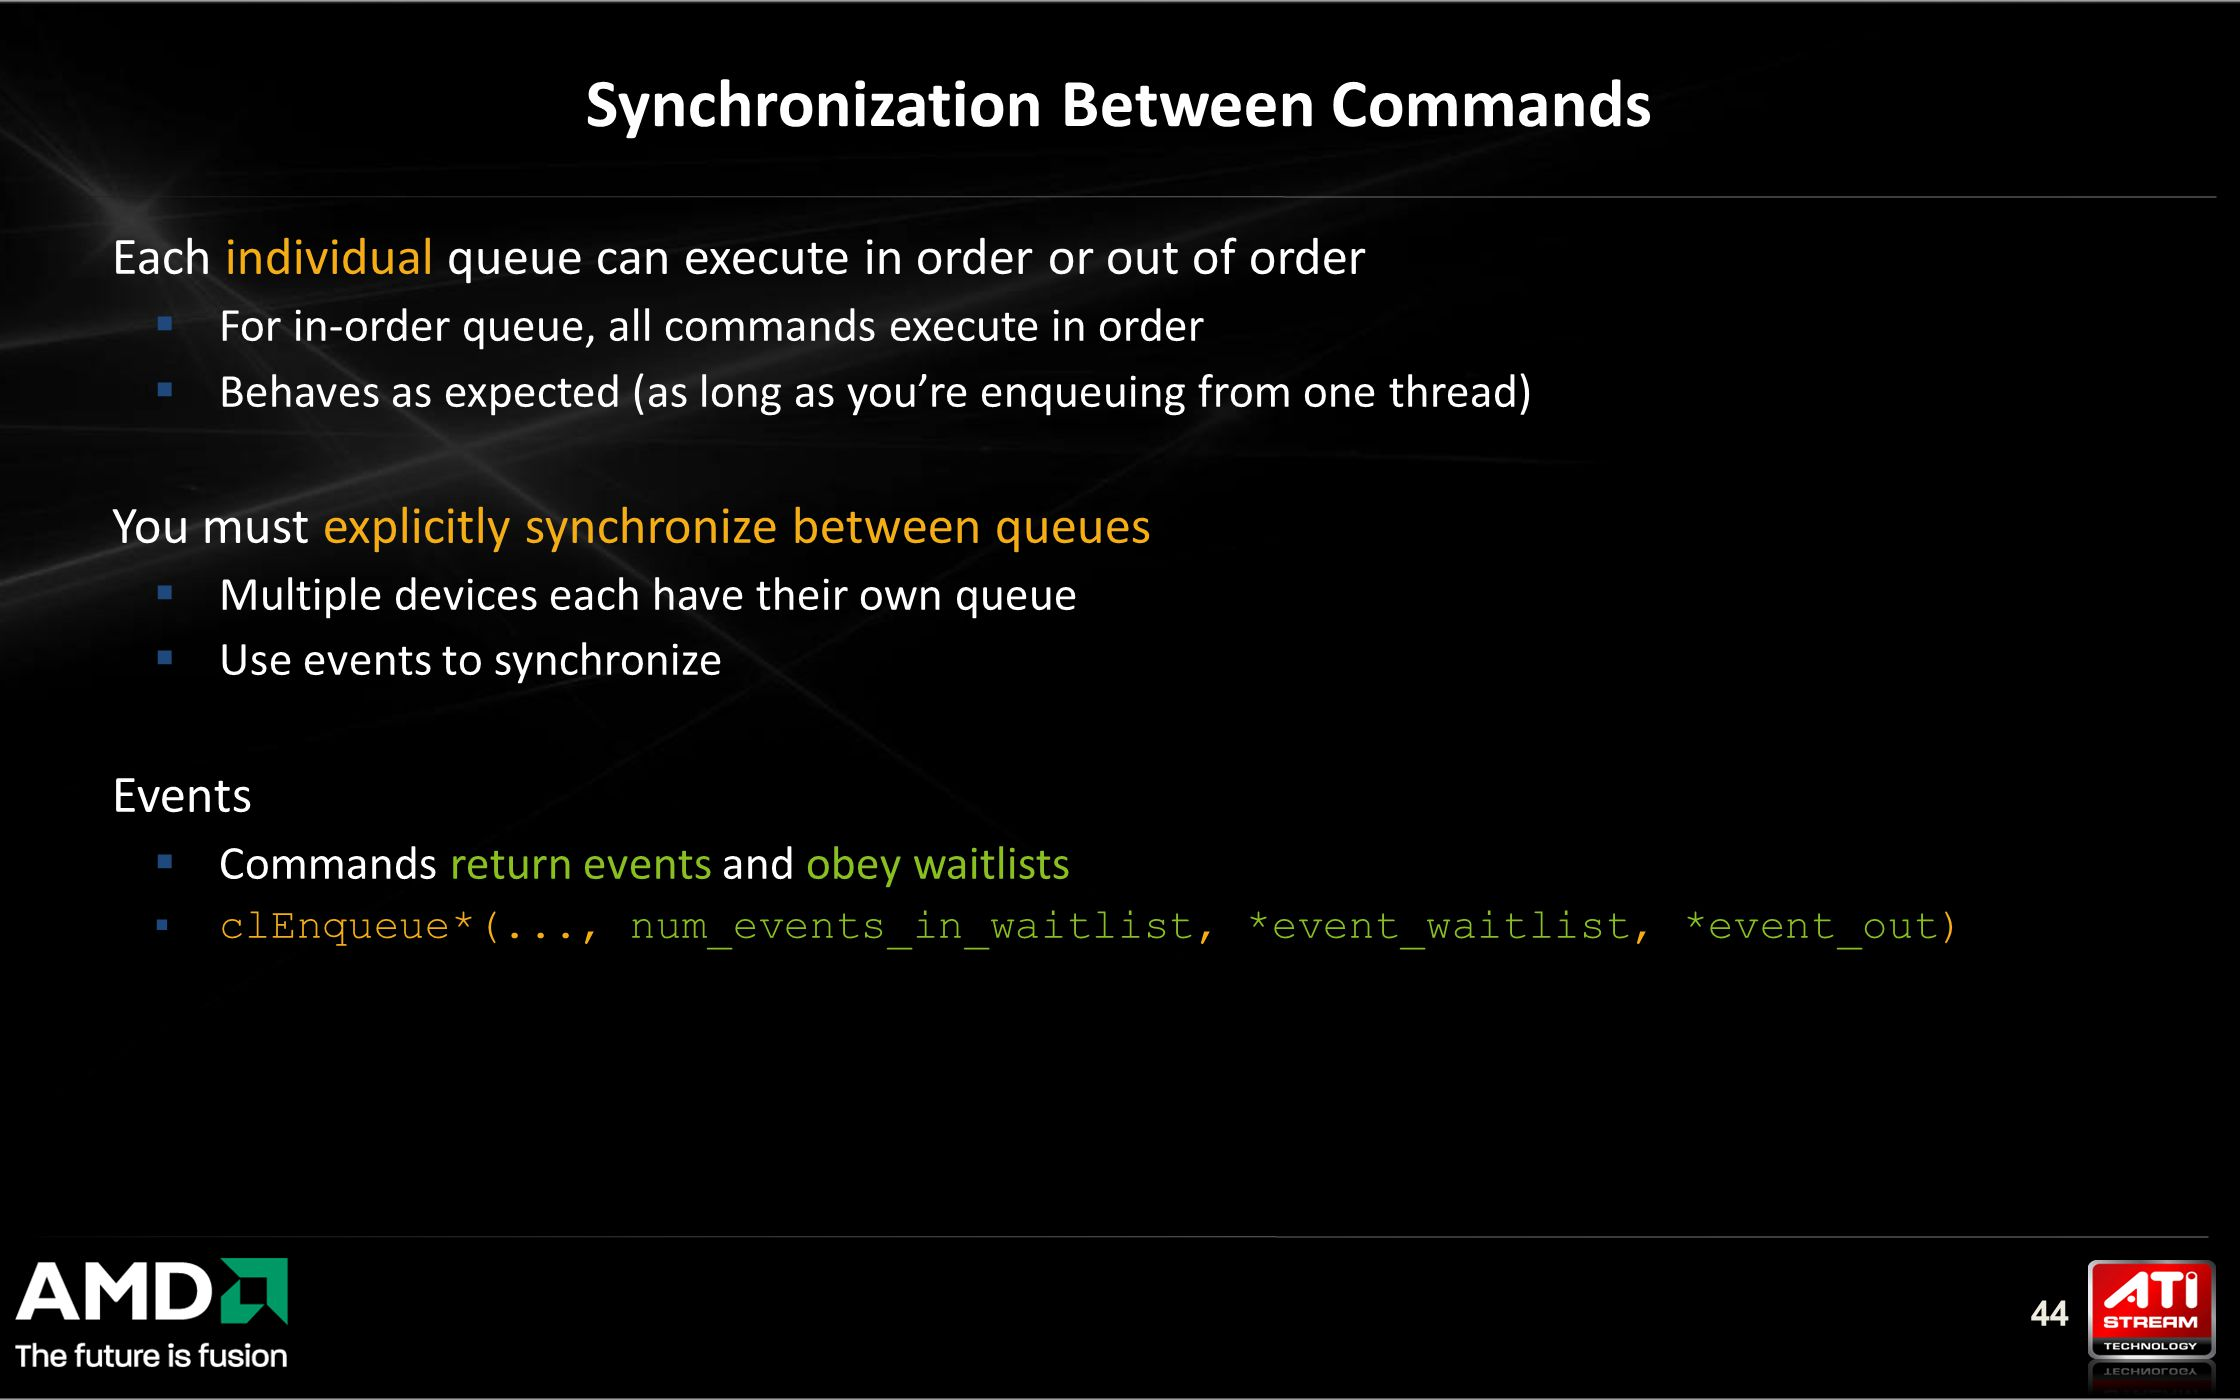 44 Synchronization Between Commands Each individual queue can execute in order or out of order  For in-order queue, all commands execute in order  Behaves as expected (as long as you're enqueuing from one thread) You must explicitly synchronize between queues  Multiple devices each have their own queue  Use events to synchronize Events  Commands return events and obey waitlists  clEnqueue*(..., num_events_in_waitlist, *event_waitlist, *event_out)